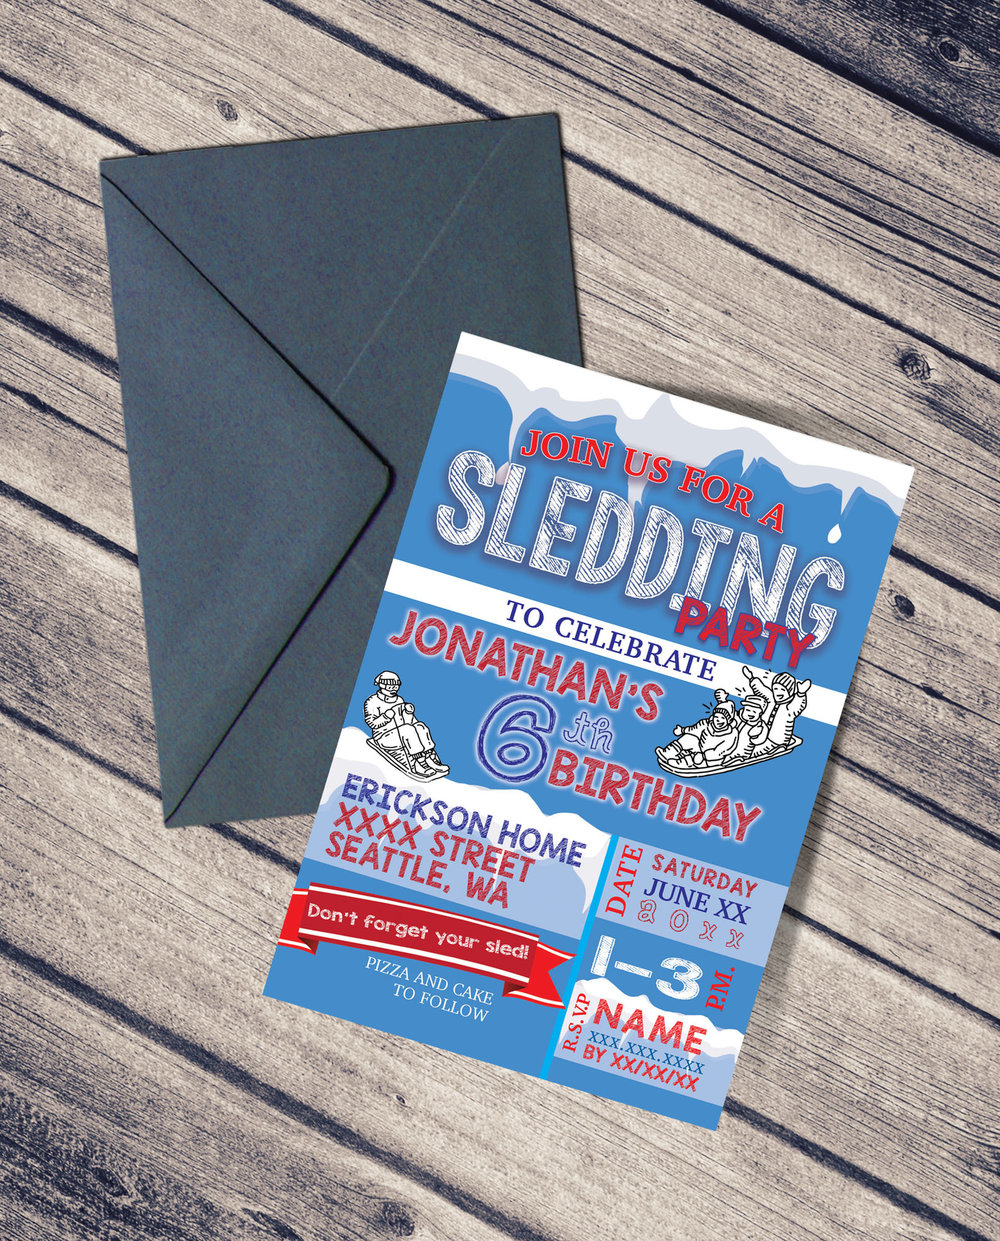 Sledding Birthday Party Invitaiton